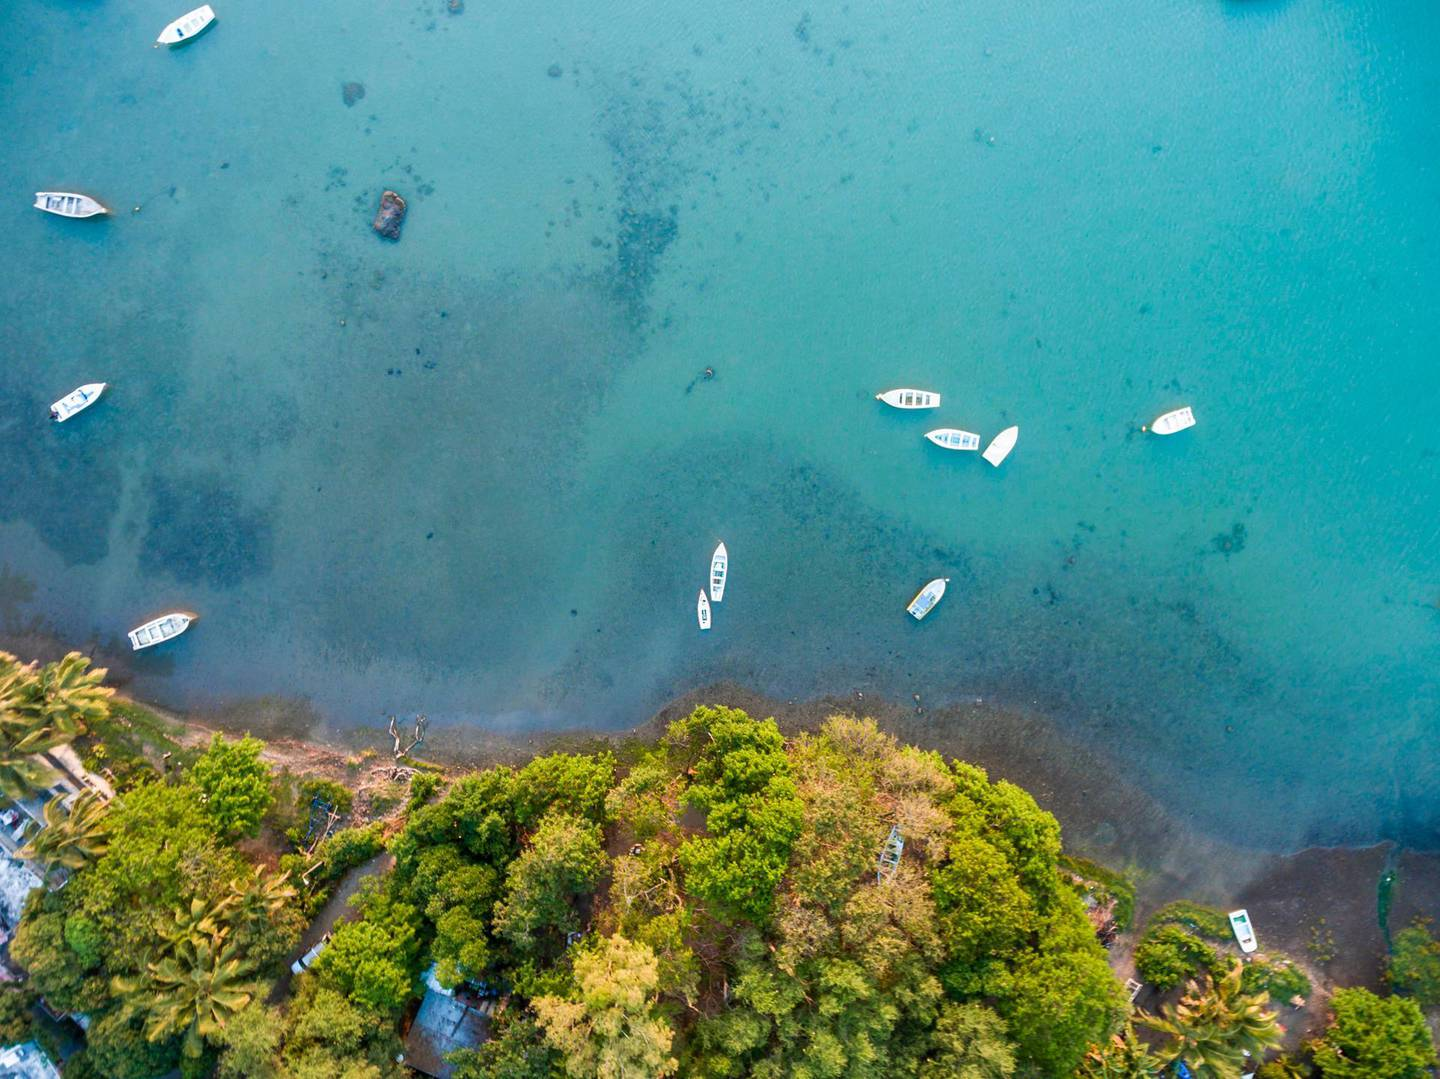 Mauritius, Riviere Noire, La Gaulette, Boats on the water, drone view. Getty Images